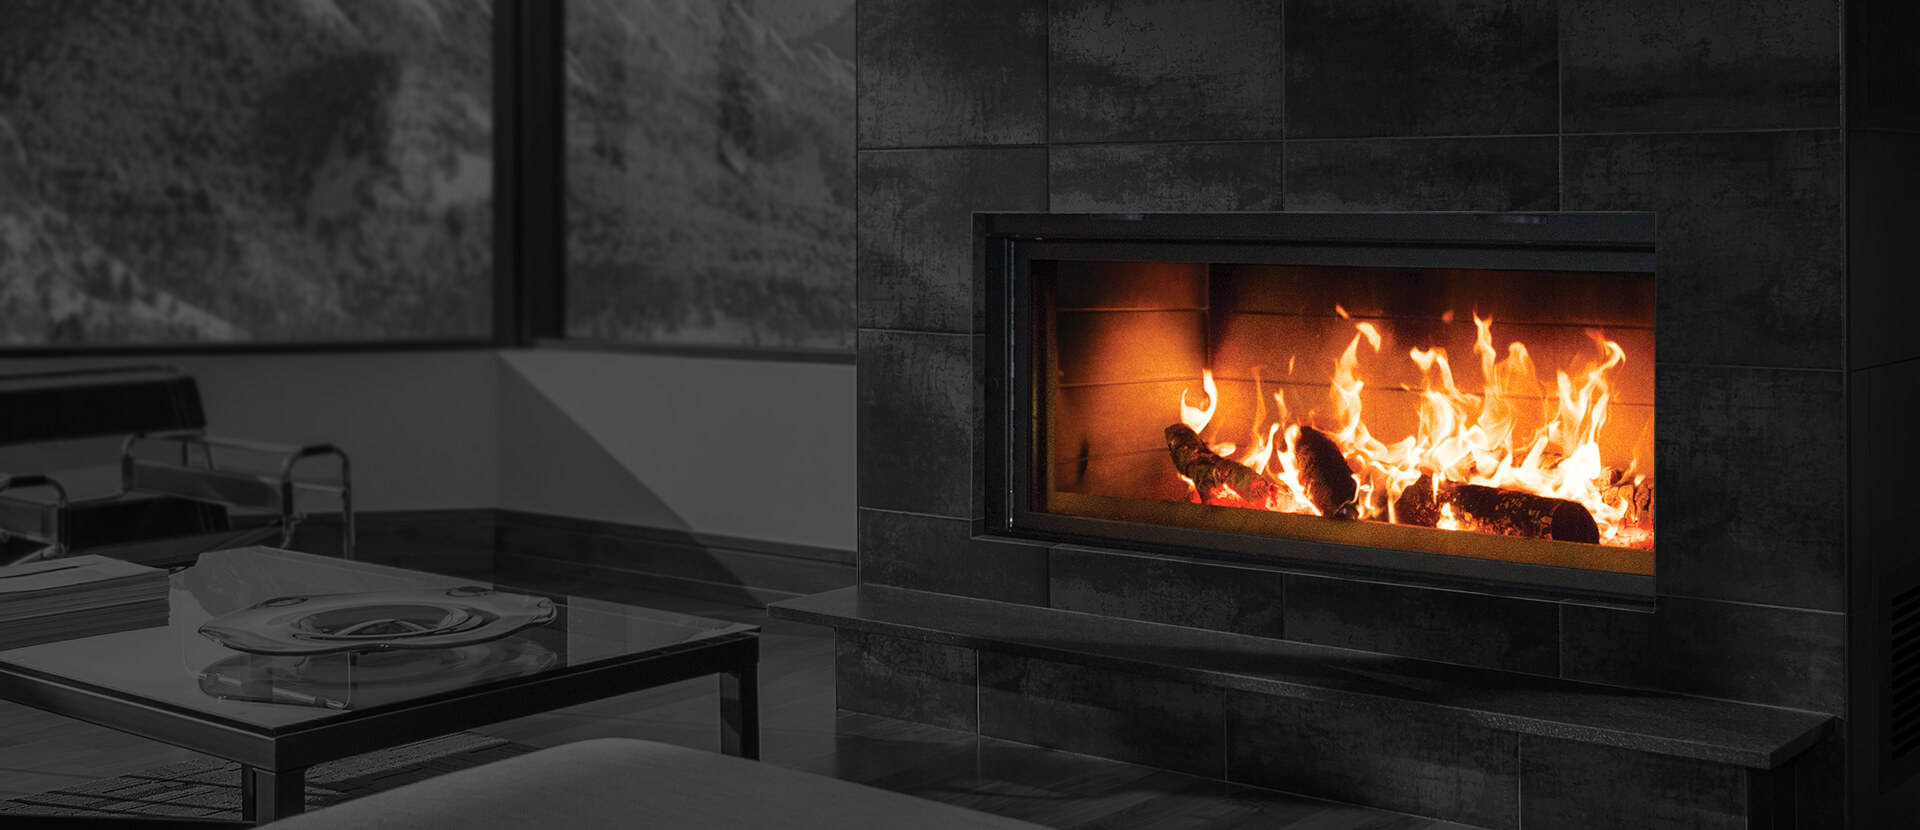 built in wood fireplaces golden bc heating contractor